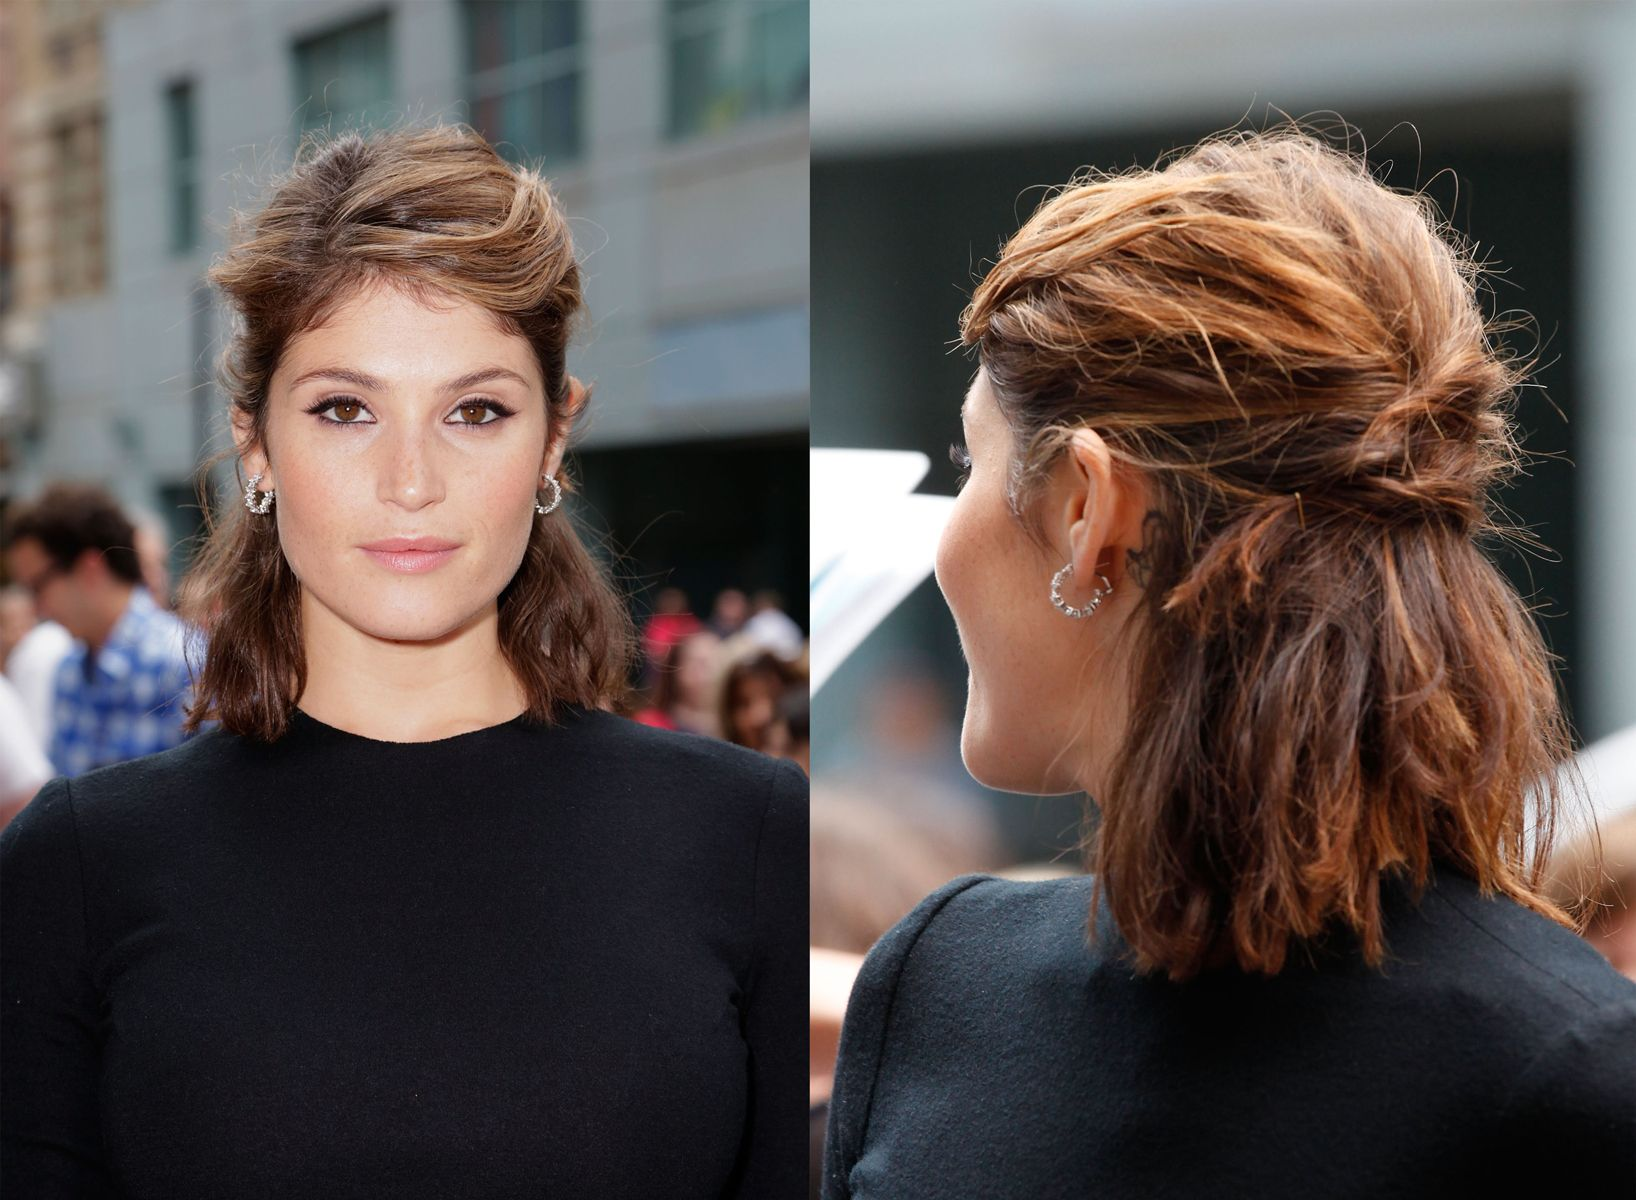 Shoulder-Length Hair With a Twist: Gemma Arterton's Half-Back Braided Look #eveninghair